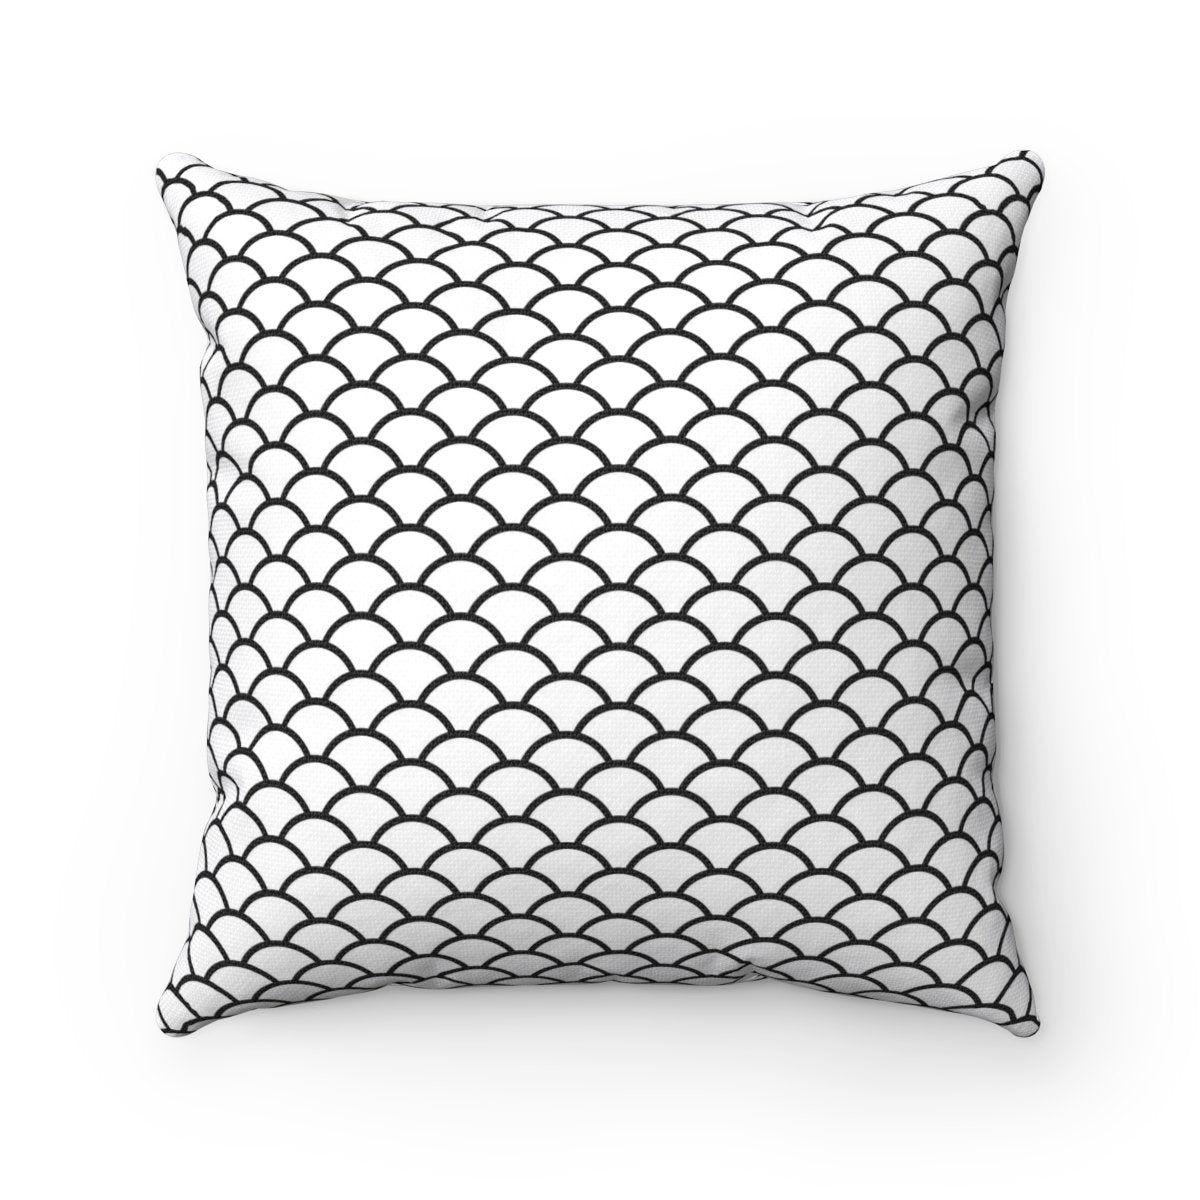 Black and white mermaid scales modern contemporary decorative cushion cover-Home Decor - Decorative Accents - Pillows & Throws - Decorative Pillows-Maison d'Elite-Très Elite